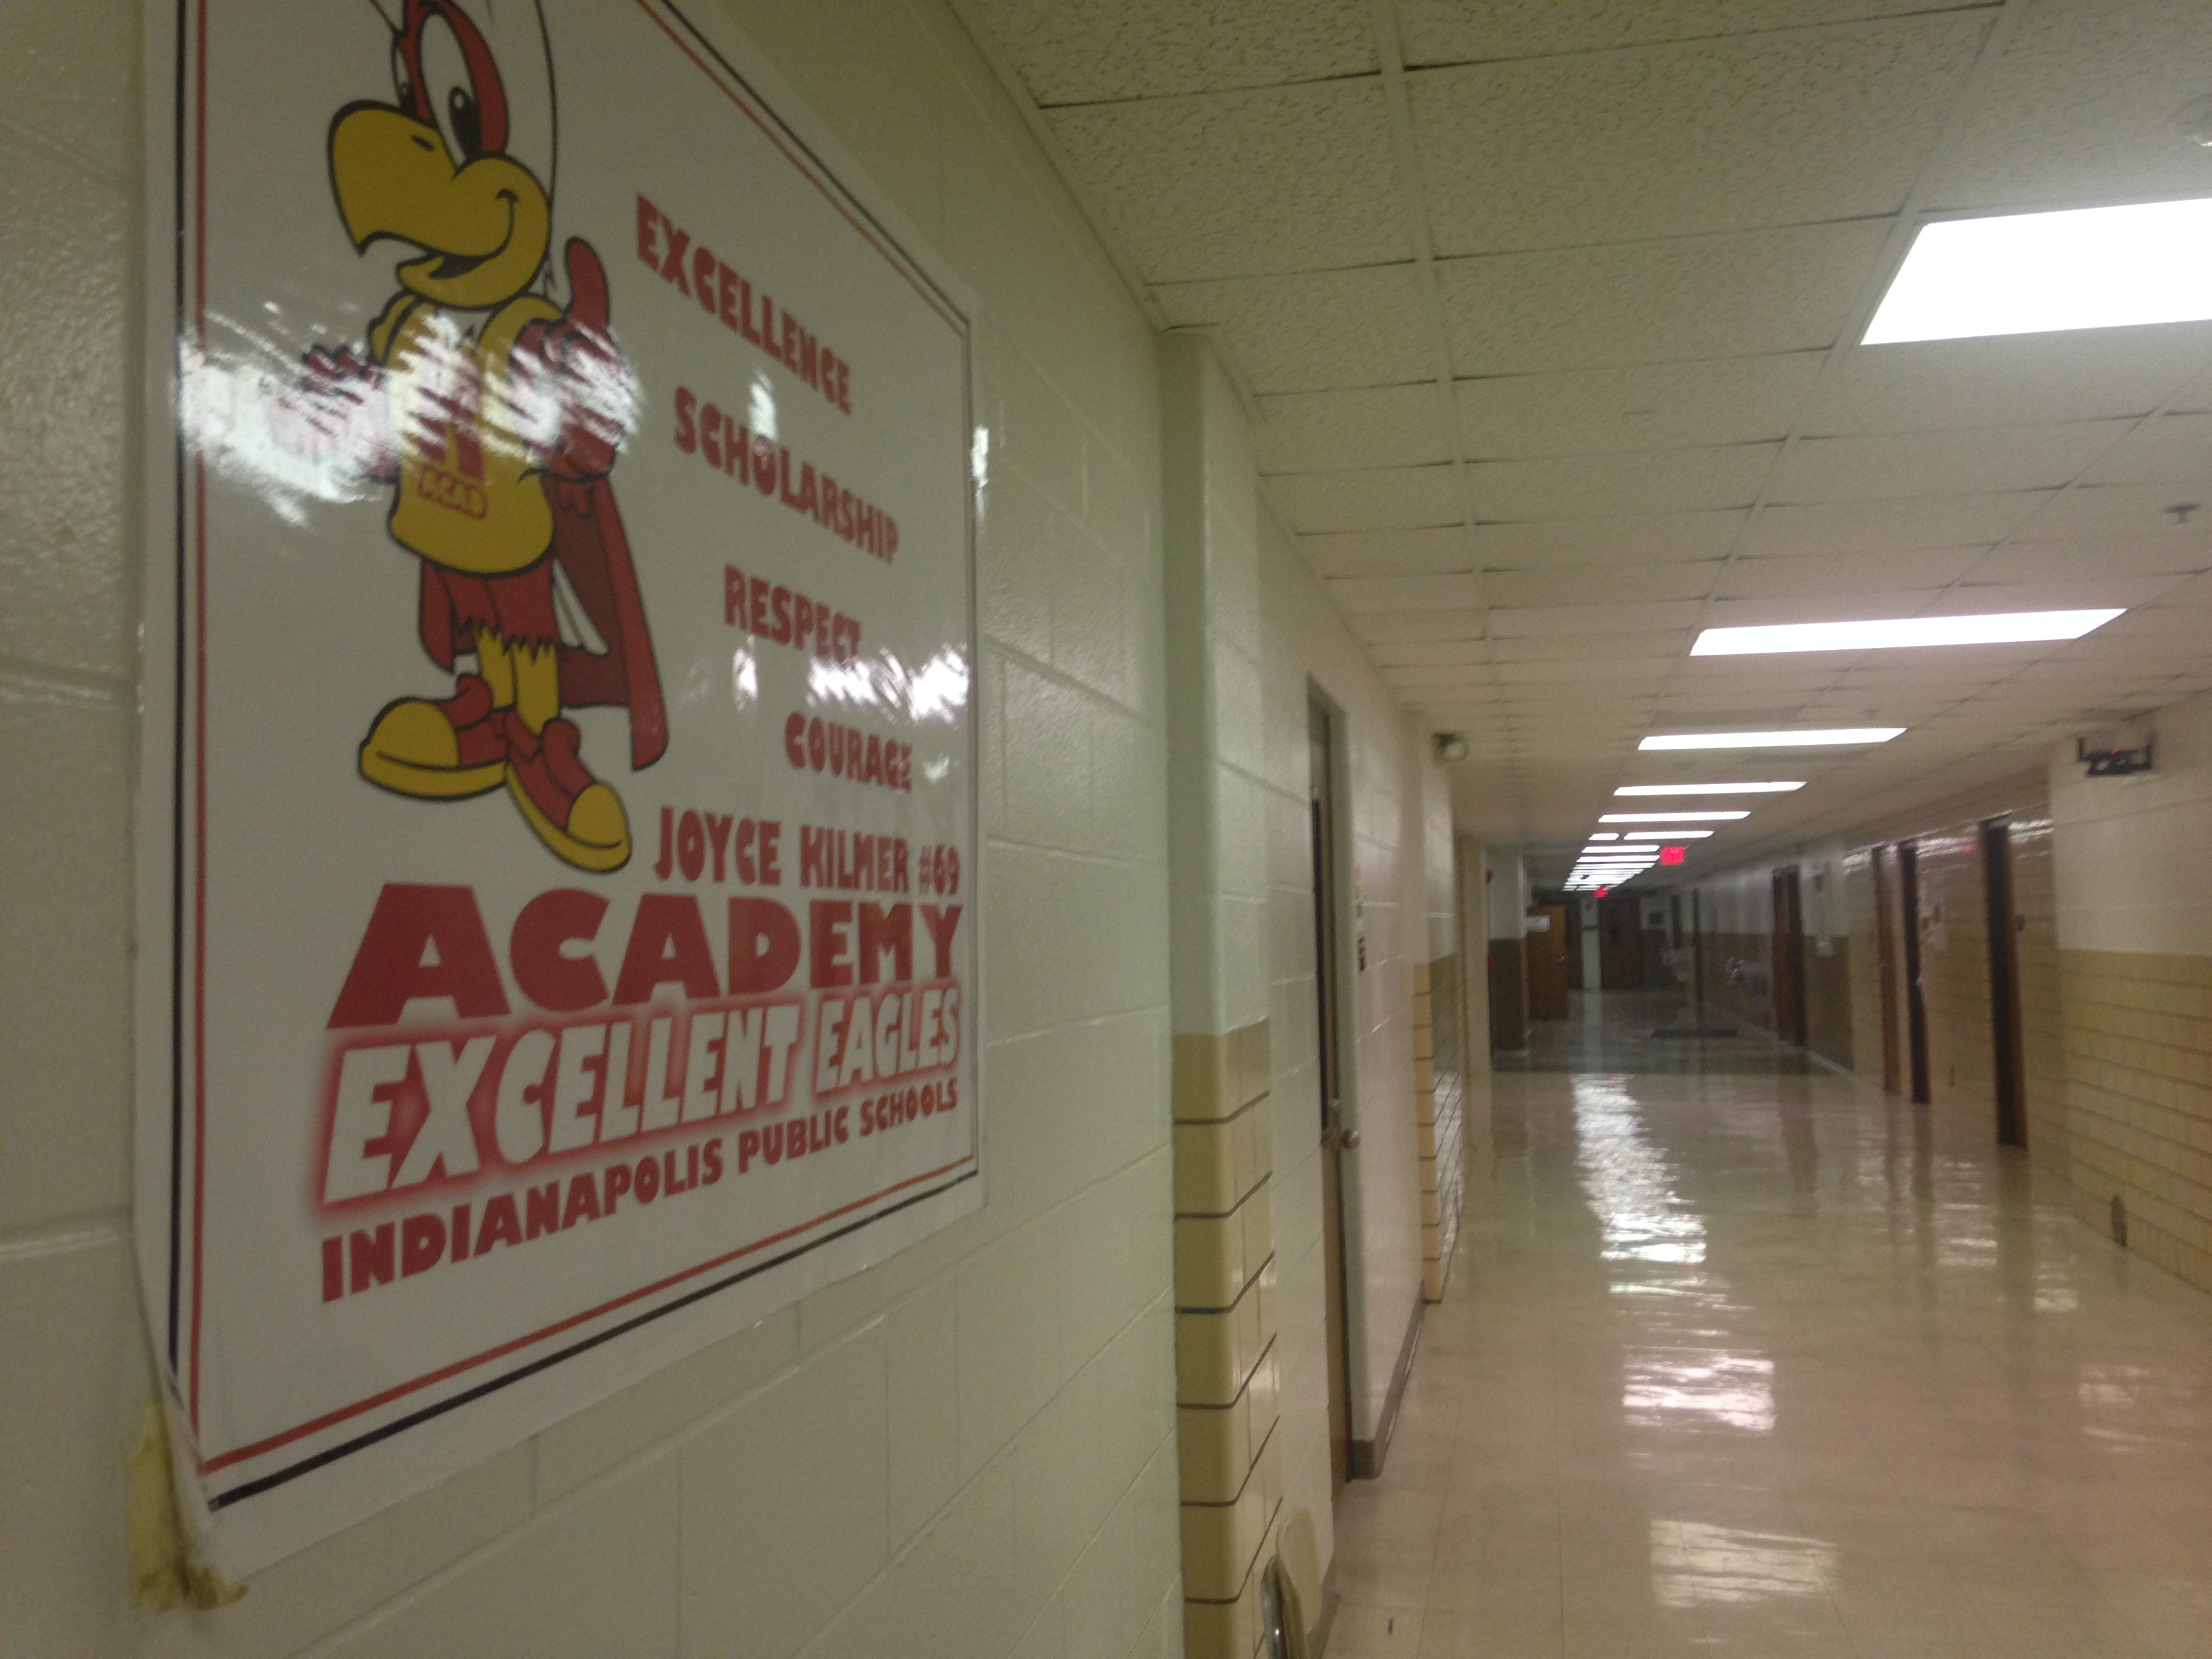 Next year, IPS School 69 will be managed by Kindezi Academy, a charter school.